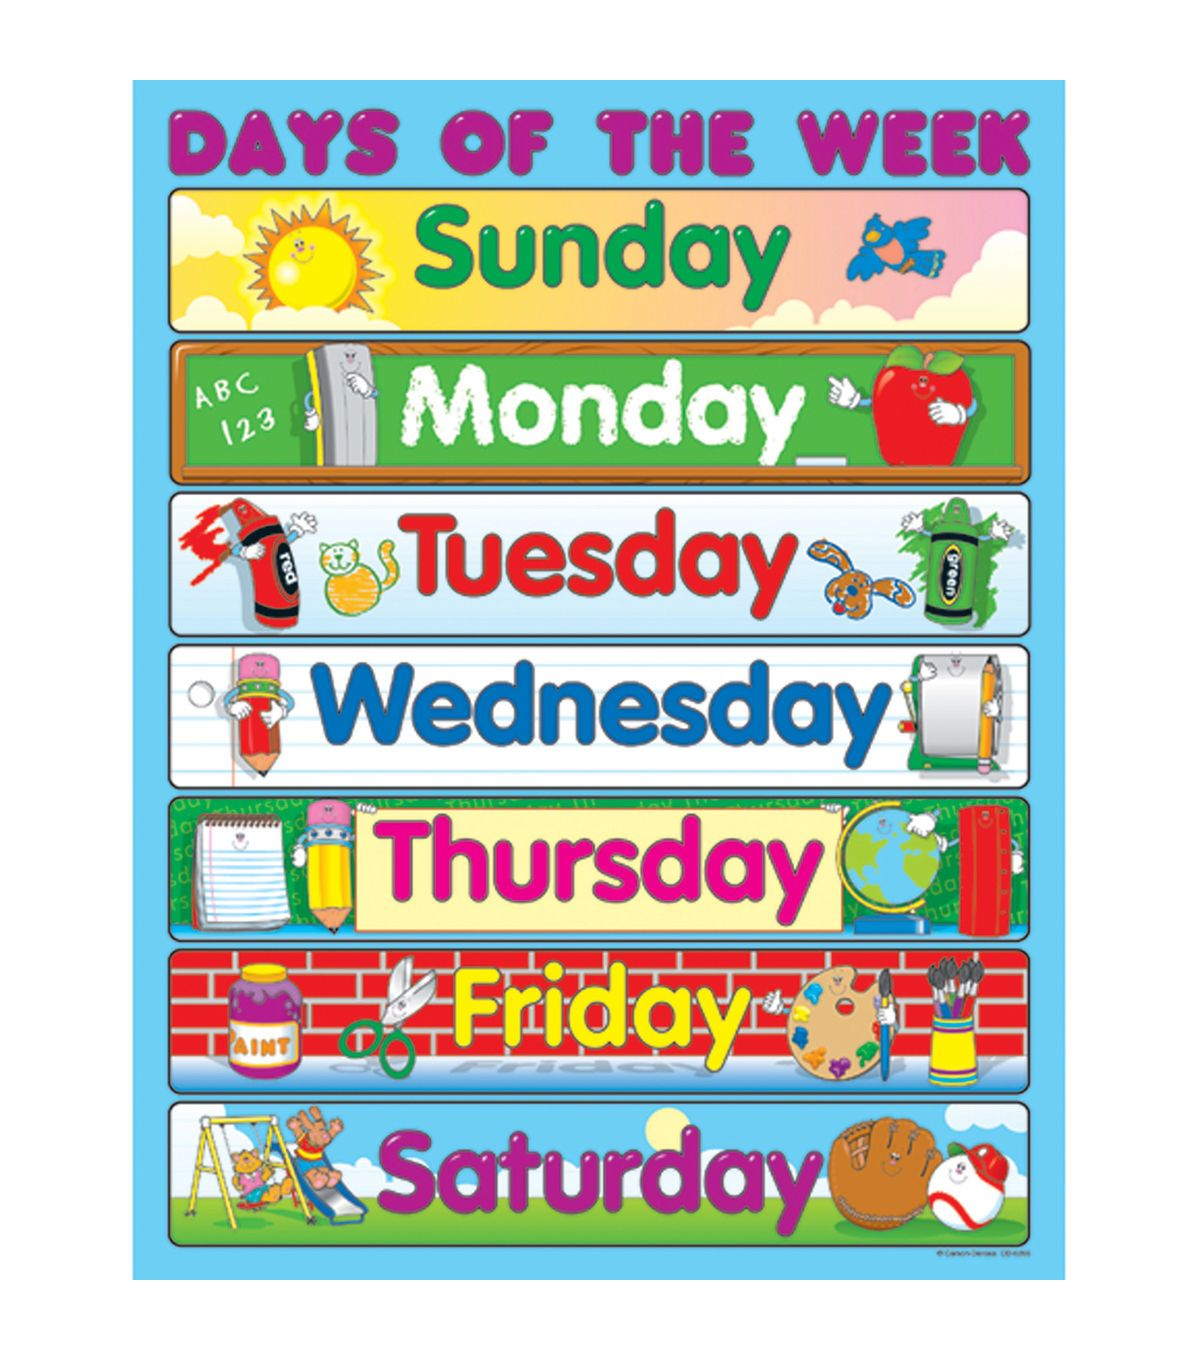 Carson Dellosa Days Of The Week Chart 6pk Kindergarten Posters Classroom Charts Manners For Kids Days of the week horizontal